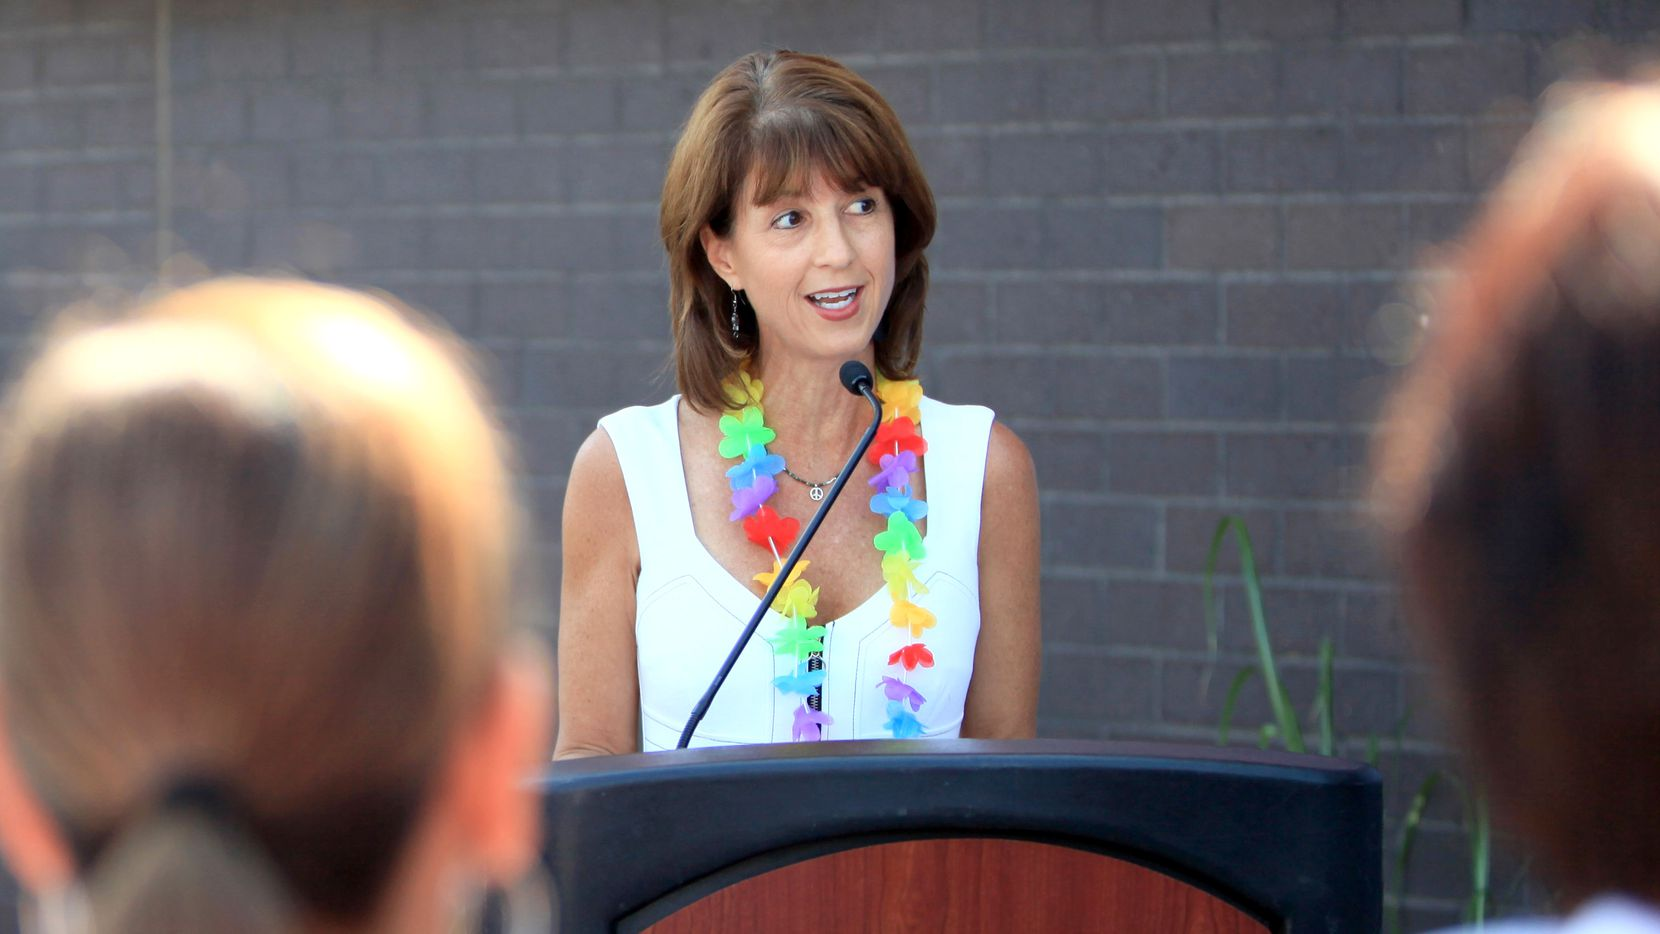 Mayor Laura Maczka, running unopposed in the May 9 election, says she will continue to serve until the election but won't be sworn in for her second term.